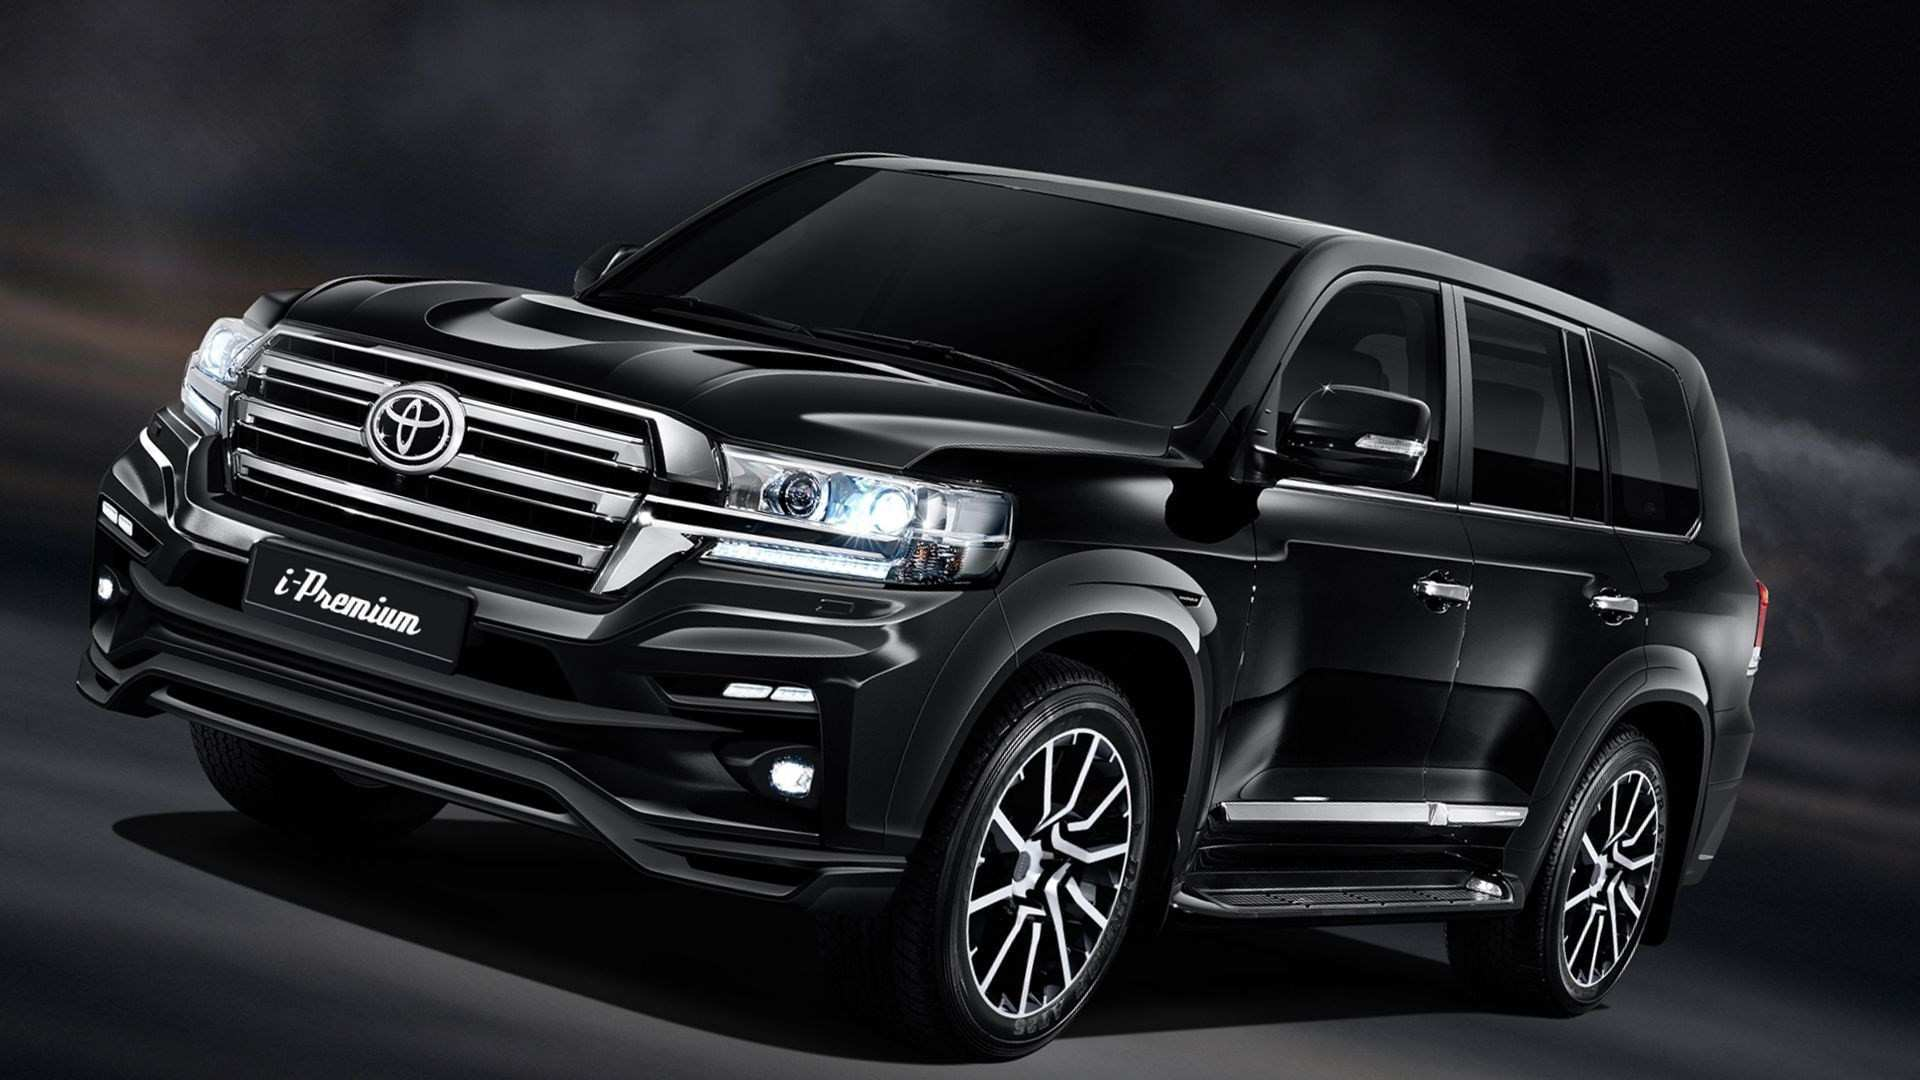 58 The 2019 Toyota Land Cruiser 200 Style for 2019 Toyota Land Cruiser 200